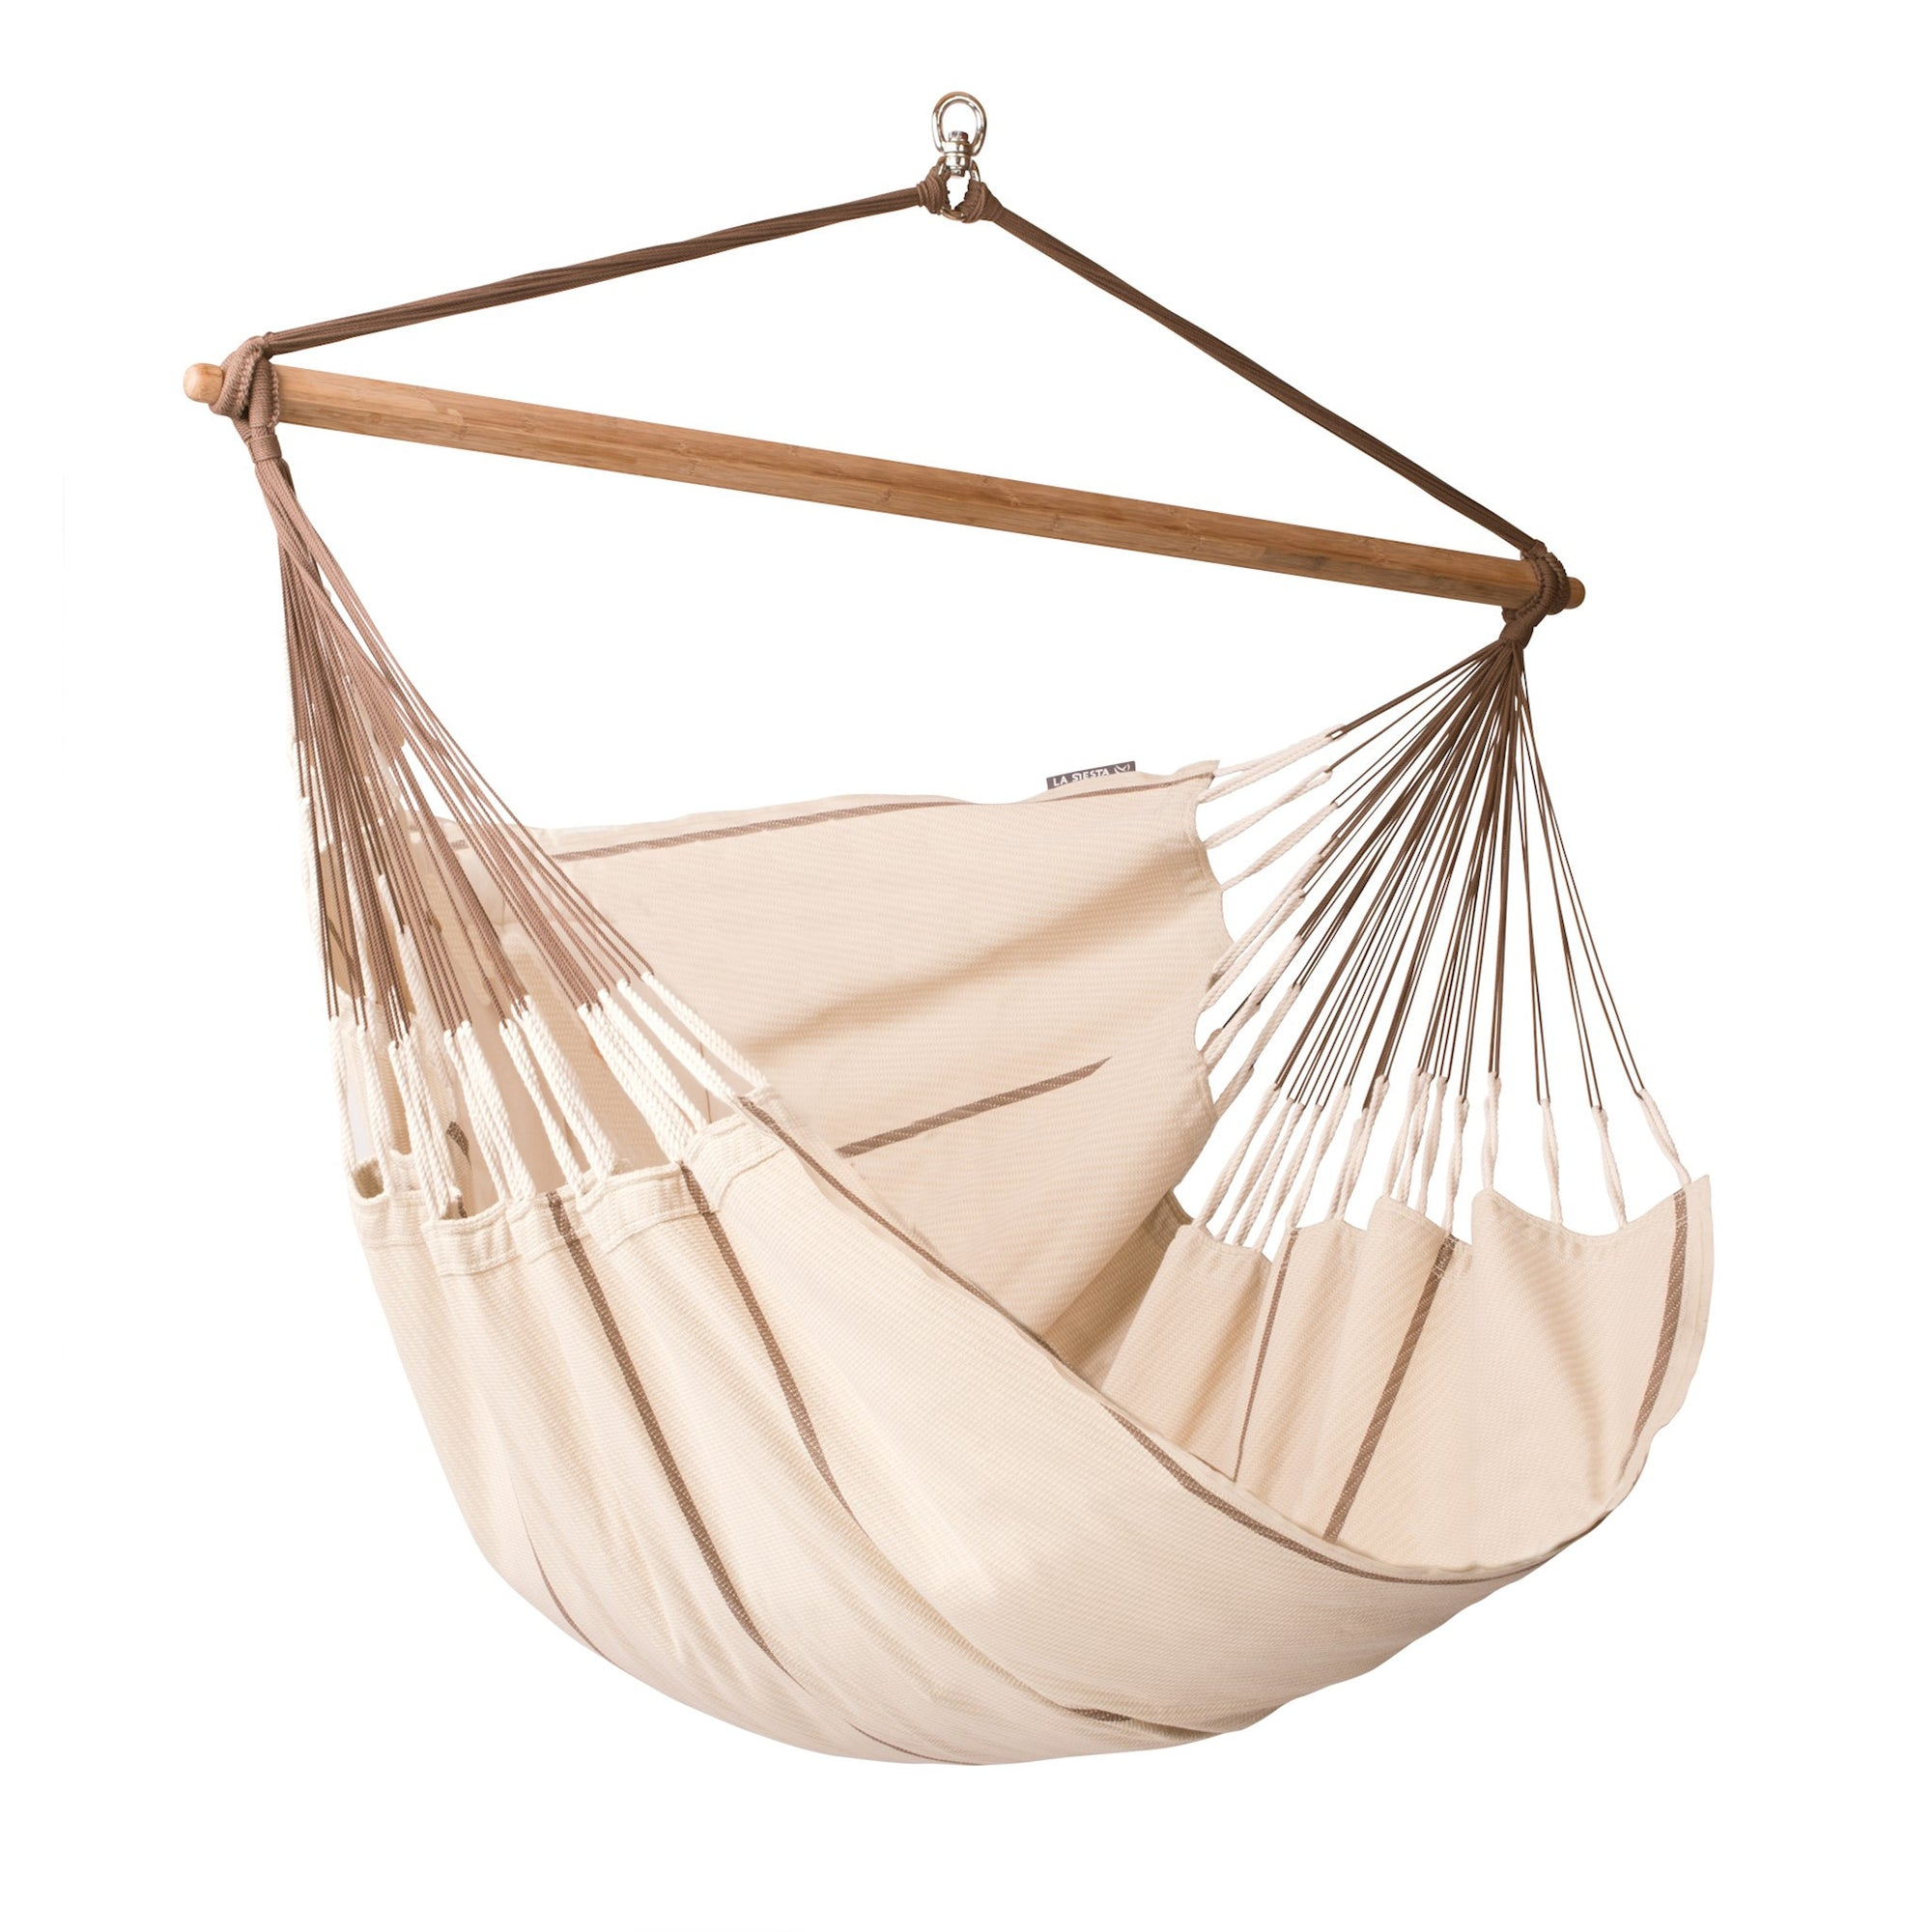 Habana Lounger Hammock Chair